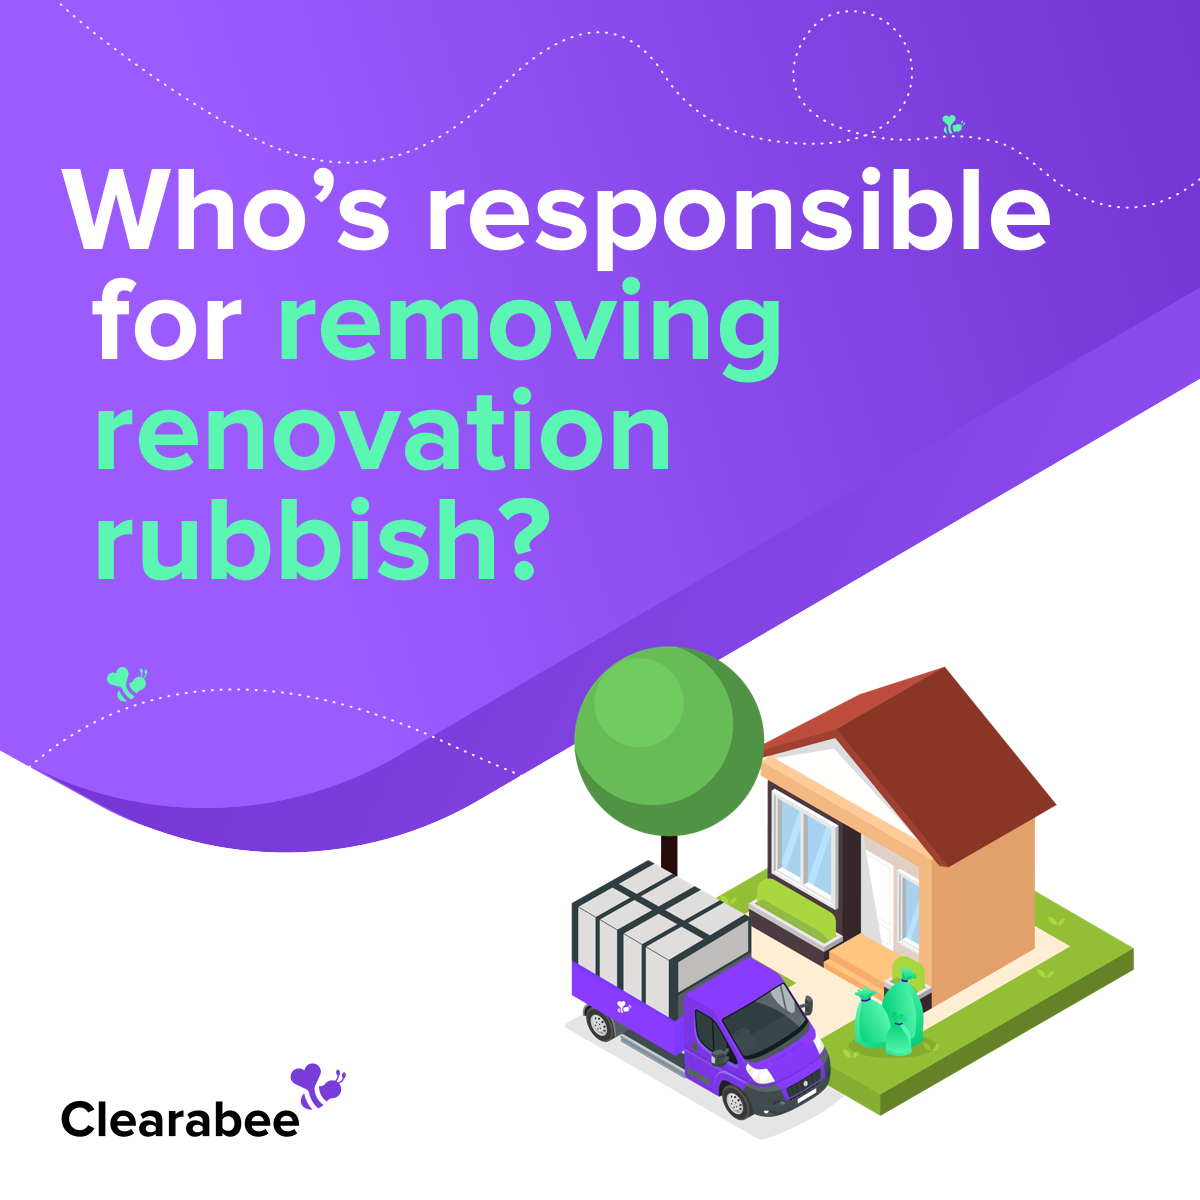 Who's Responsible for Removing Renovation Rubbish?